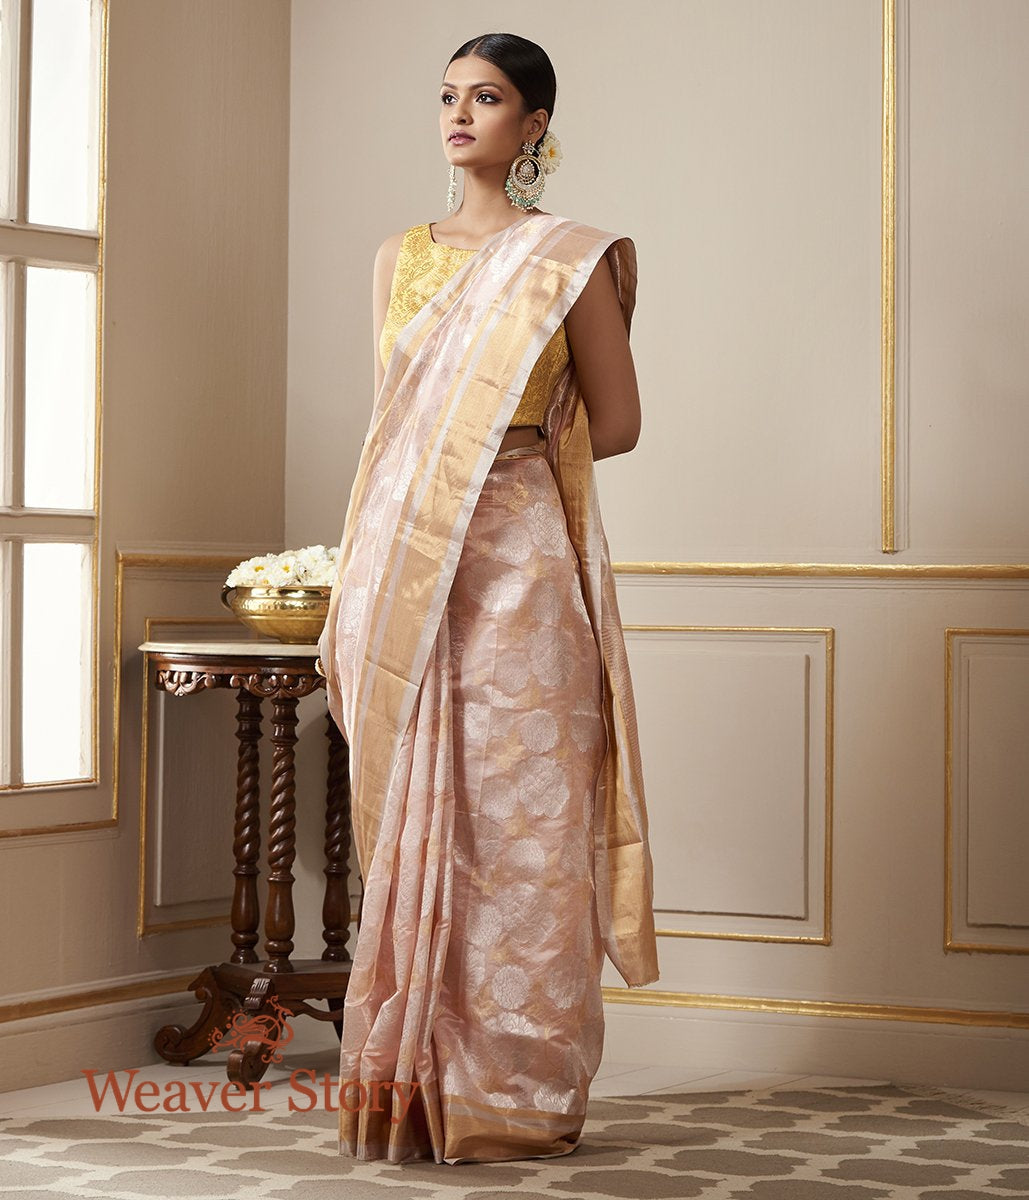 Handwoven Soft Pink Chanderi Silk Saree with Gold and Silver Zari Floral Jaal